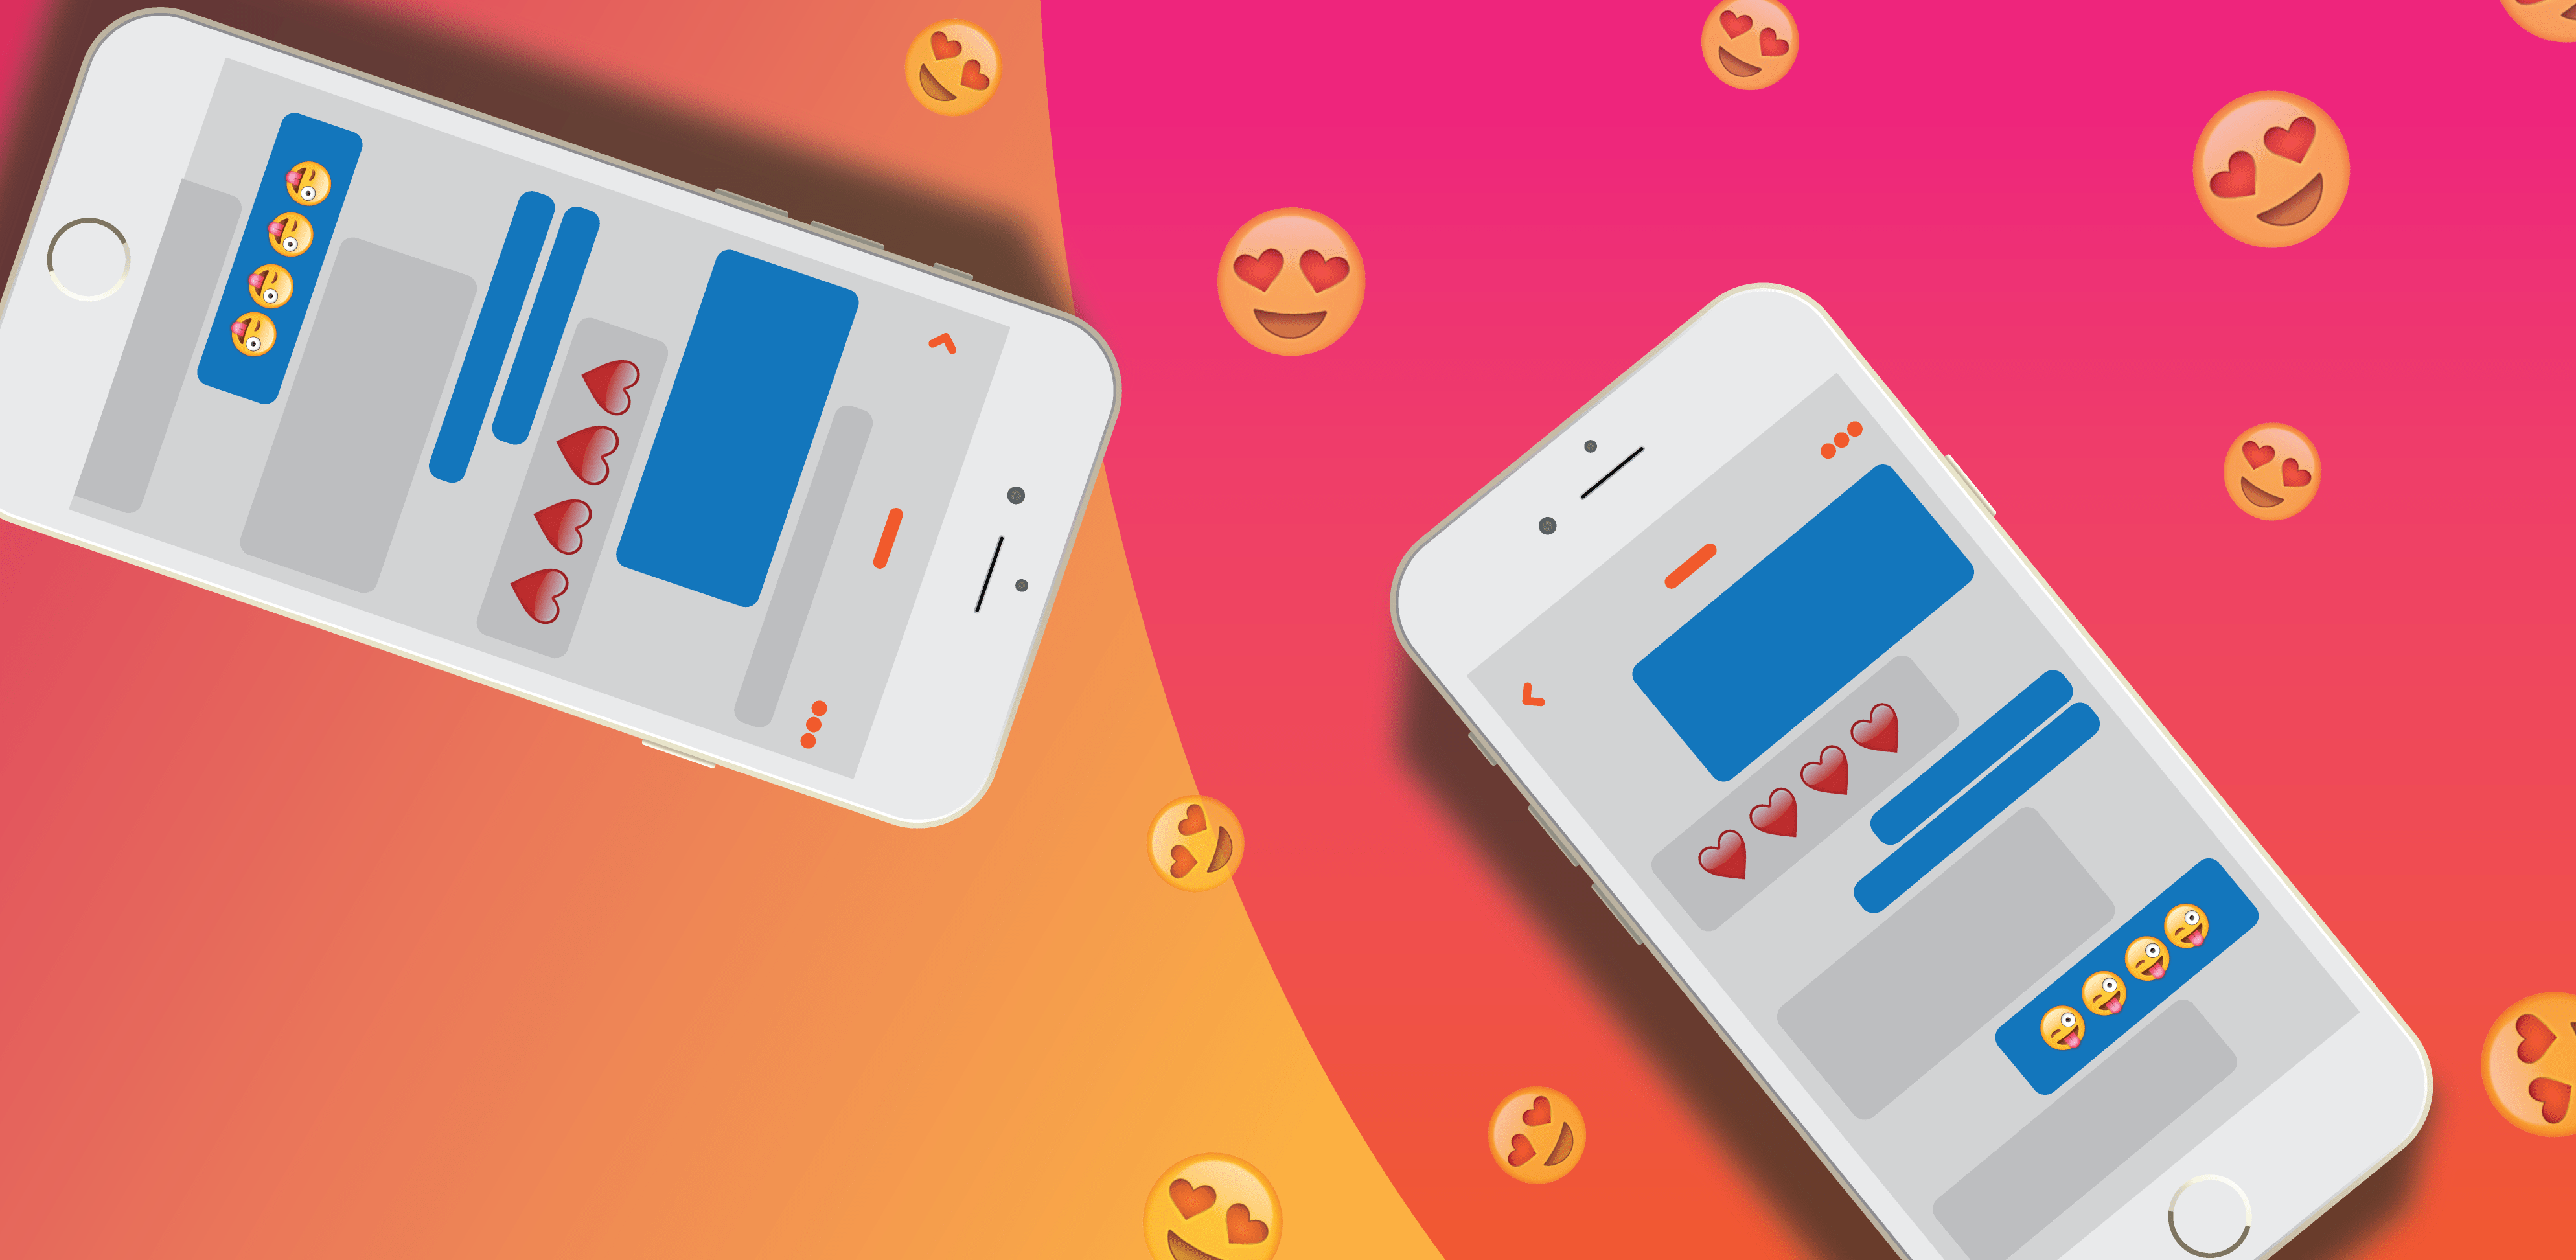 Free dating apps like tinder for college